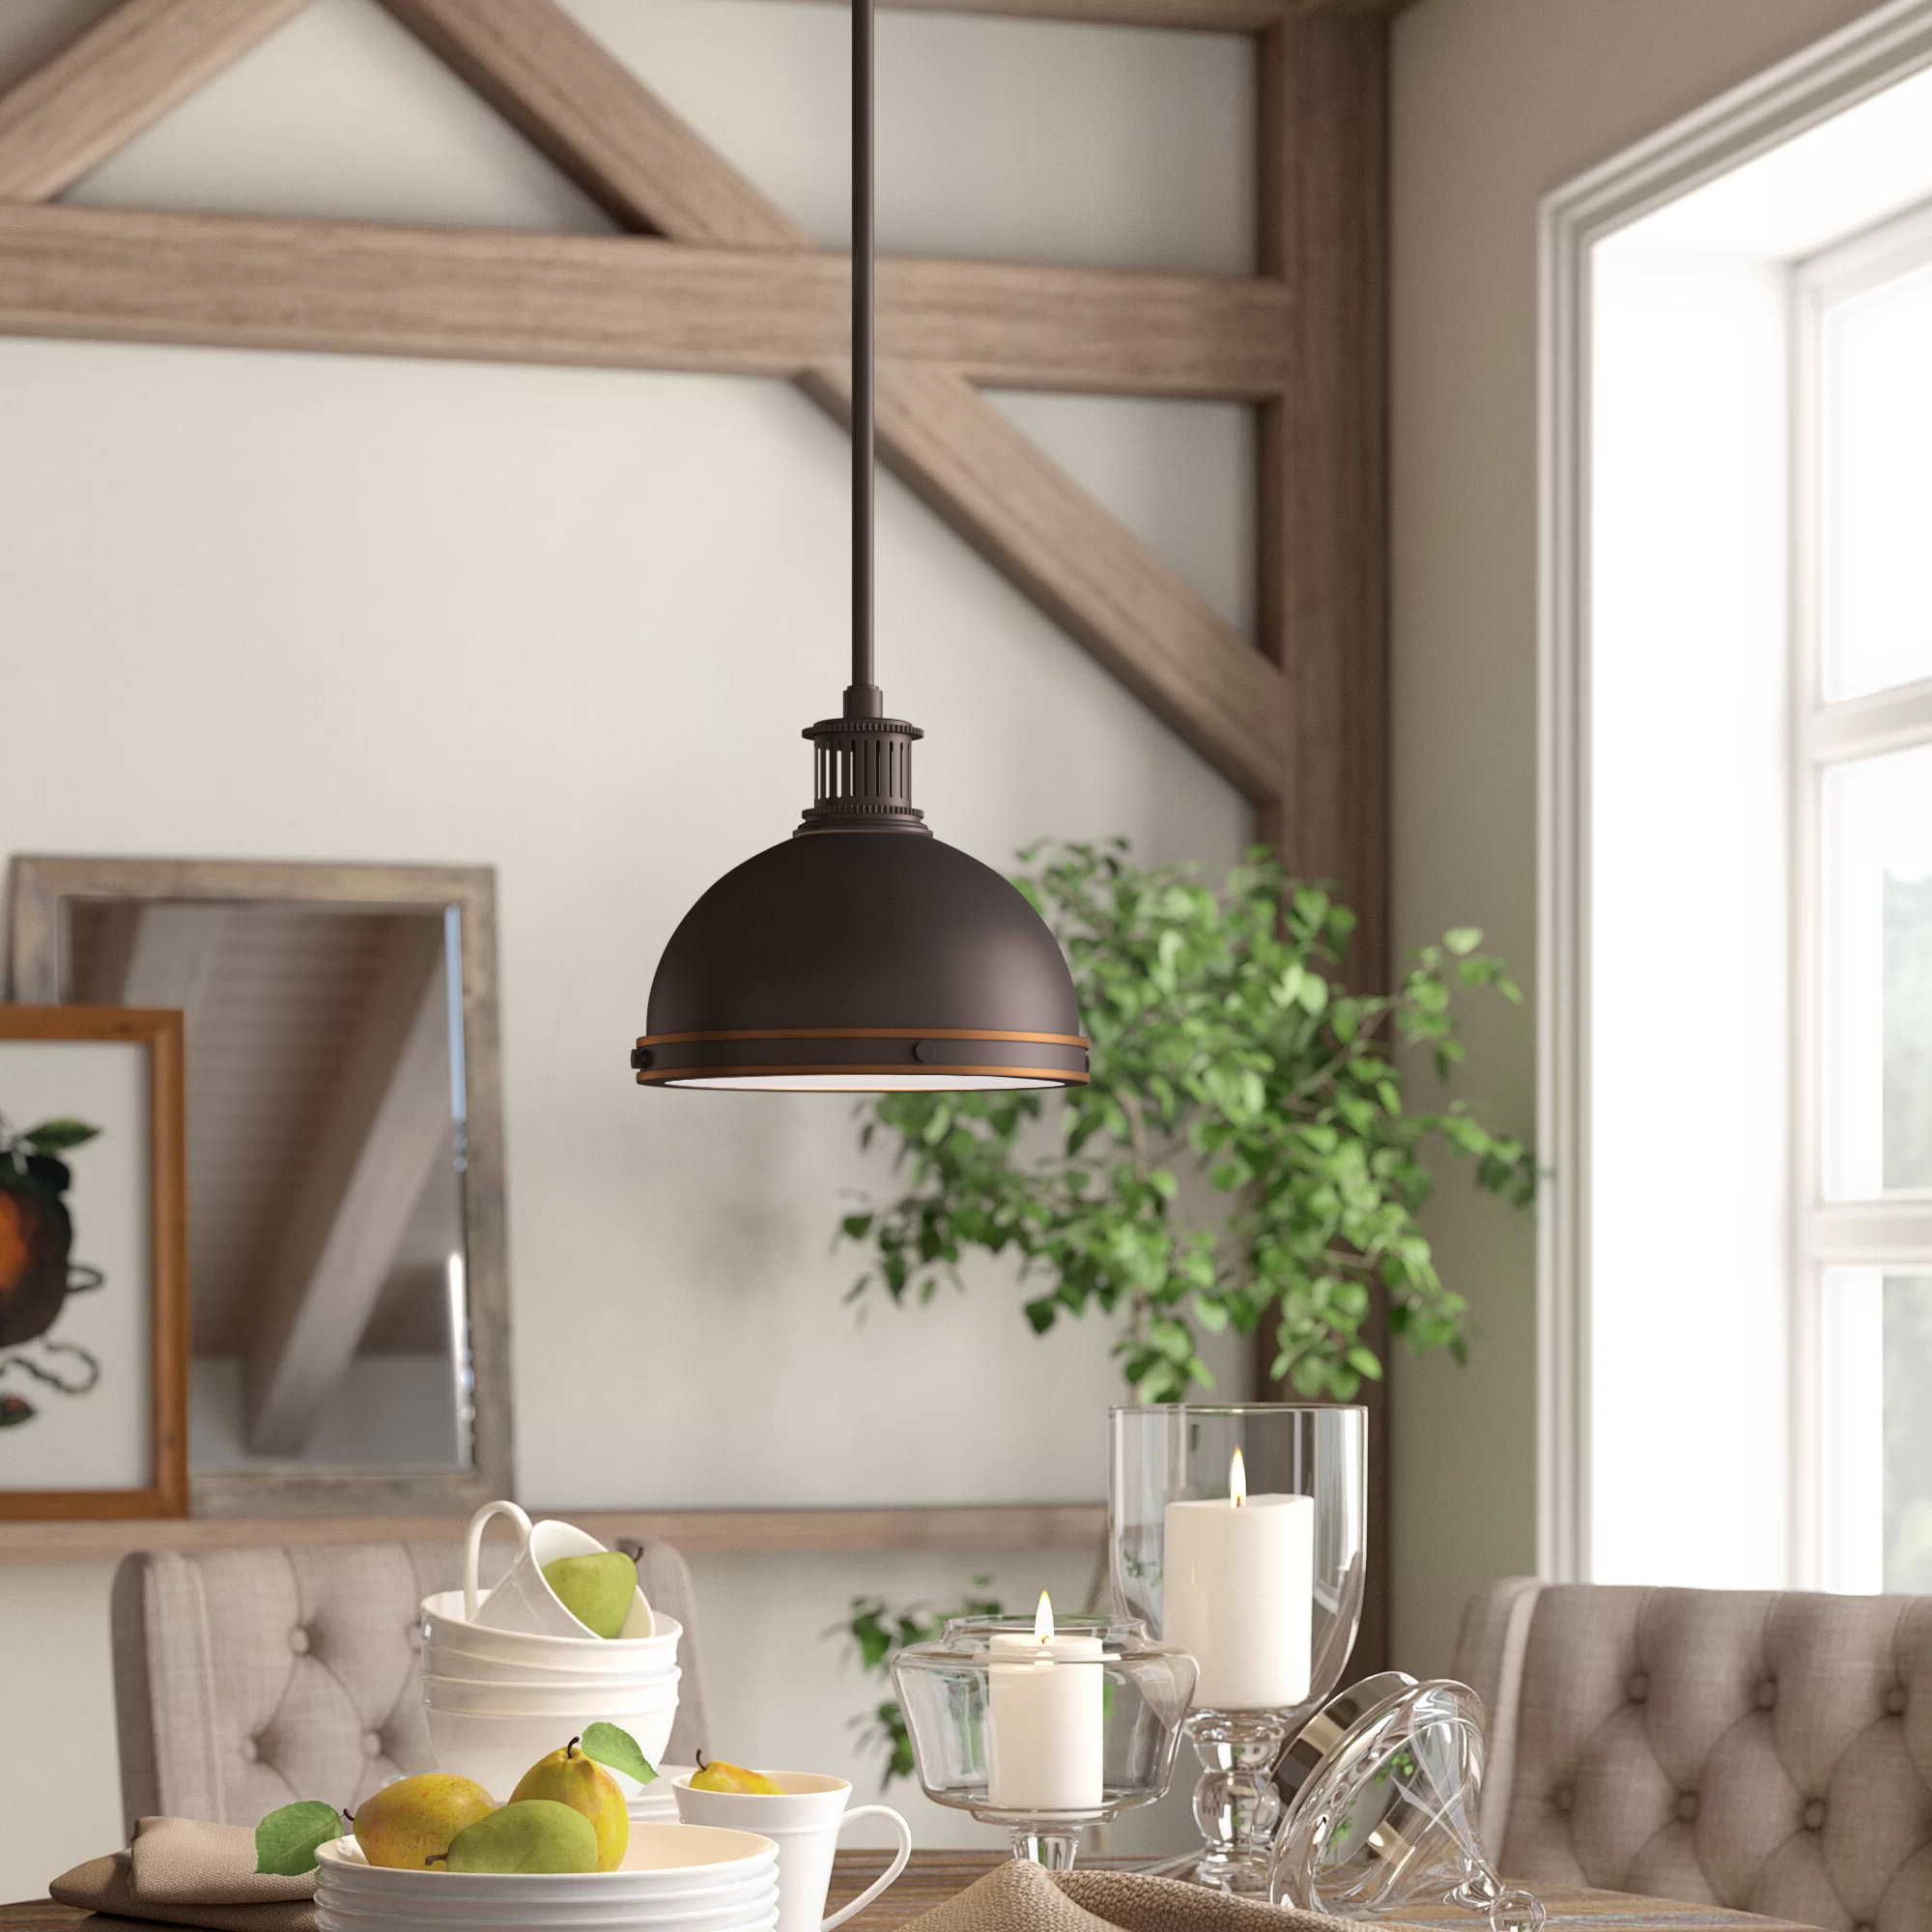 Orchard Hill 1 Light Led Dome Pendant With Latest Amara 2 Light Dome Pendants (View 16 of 20)